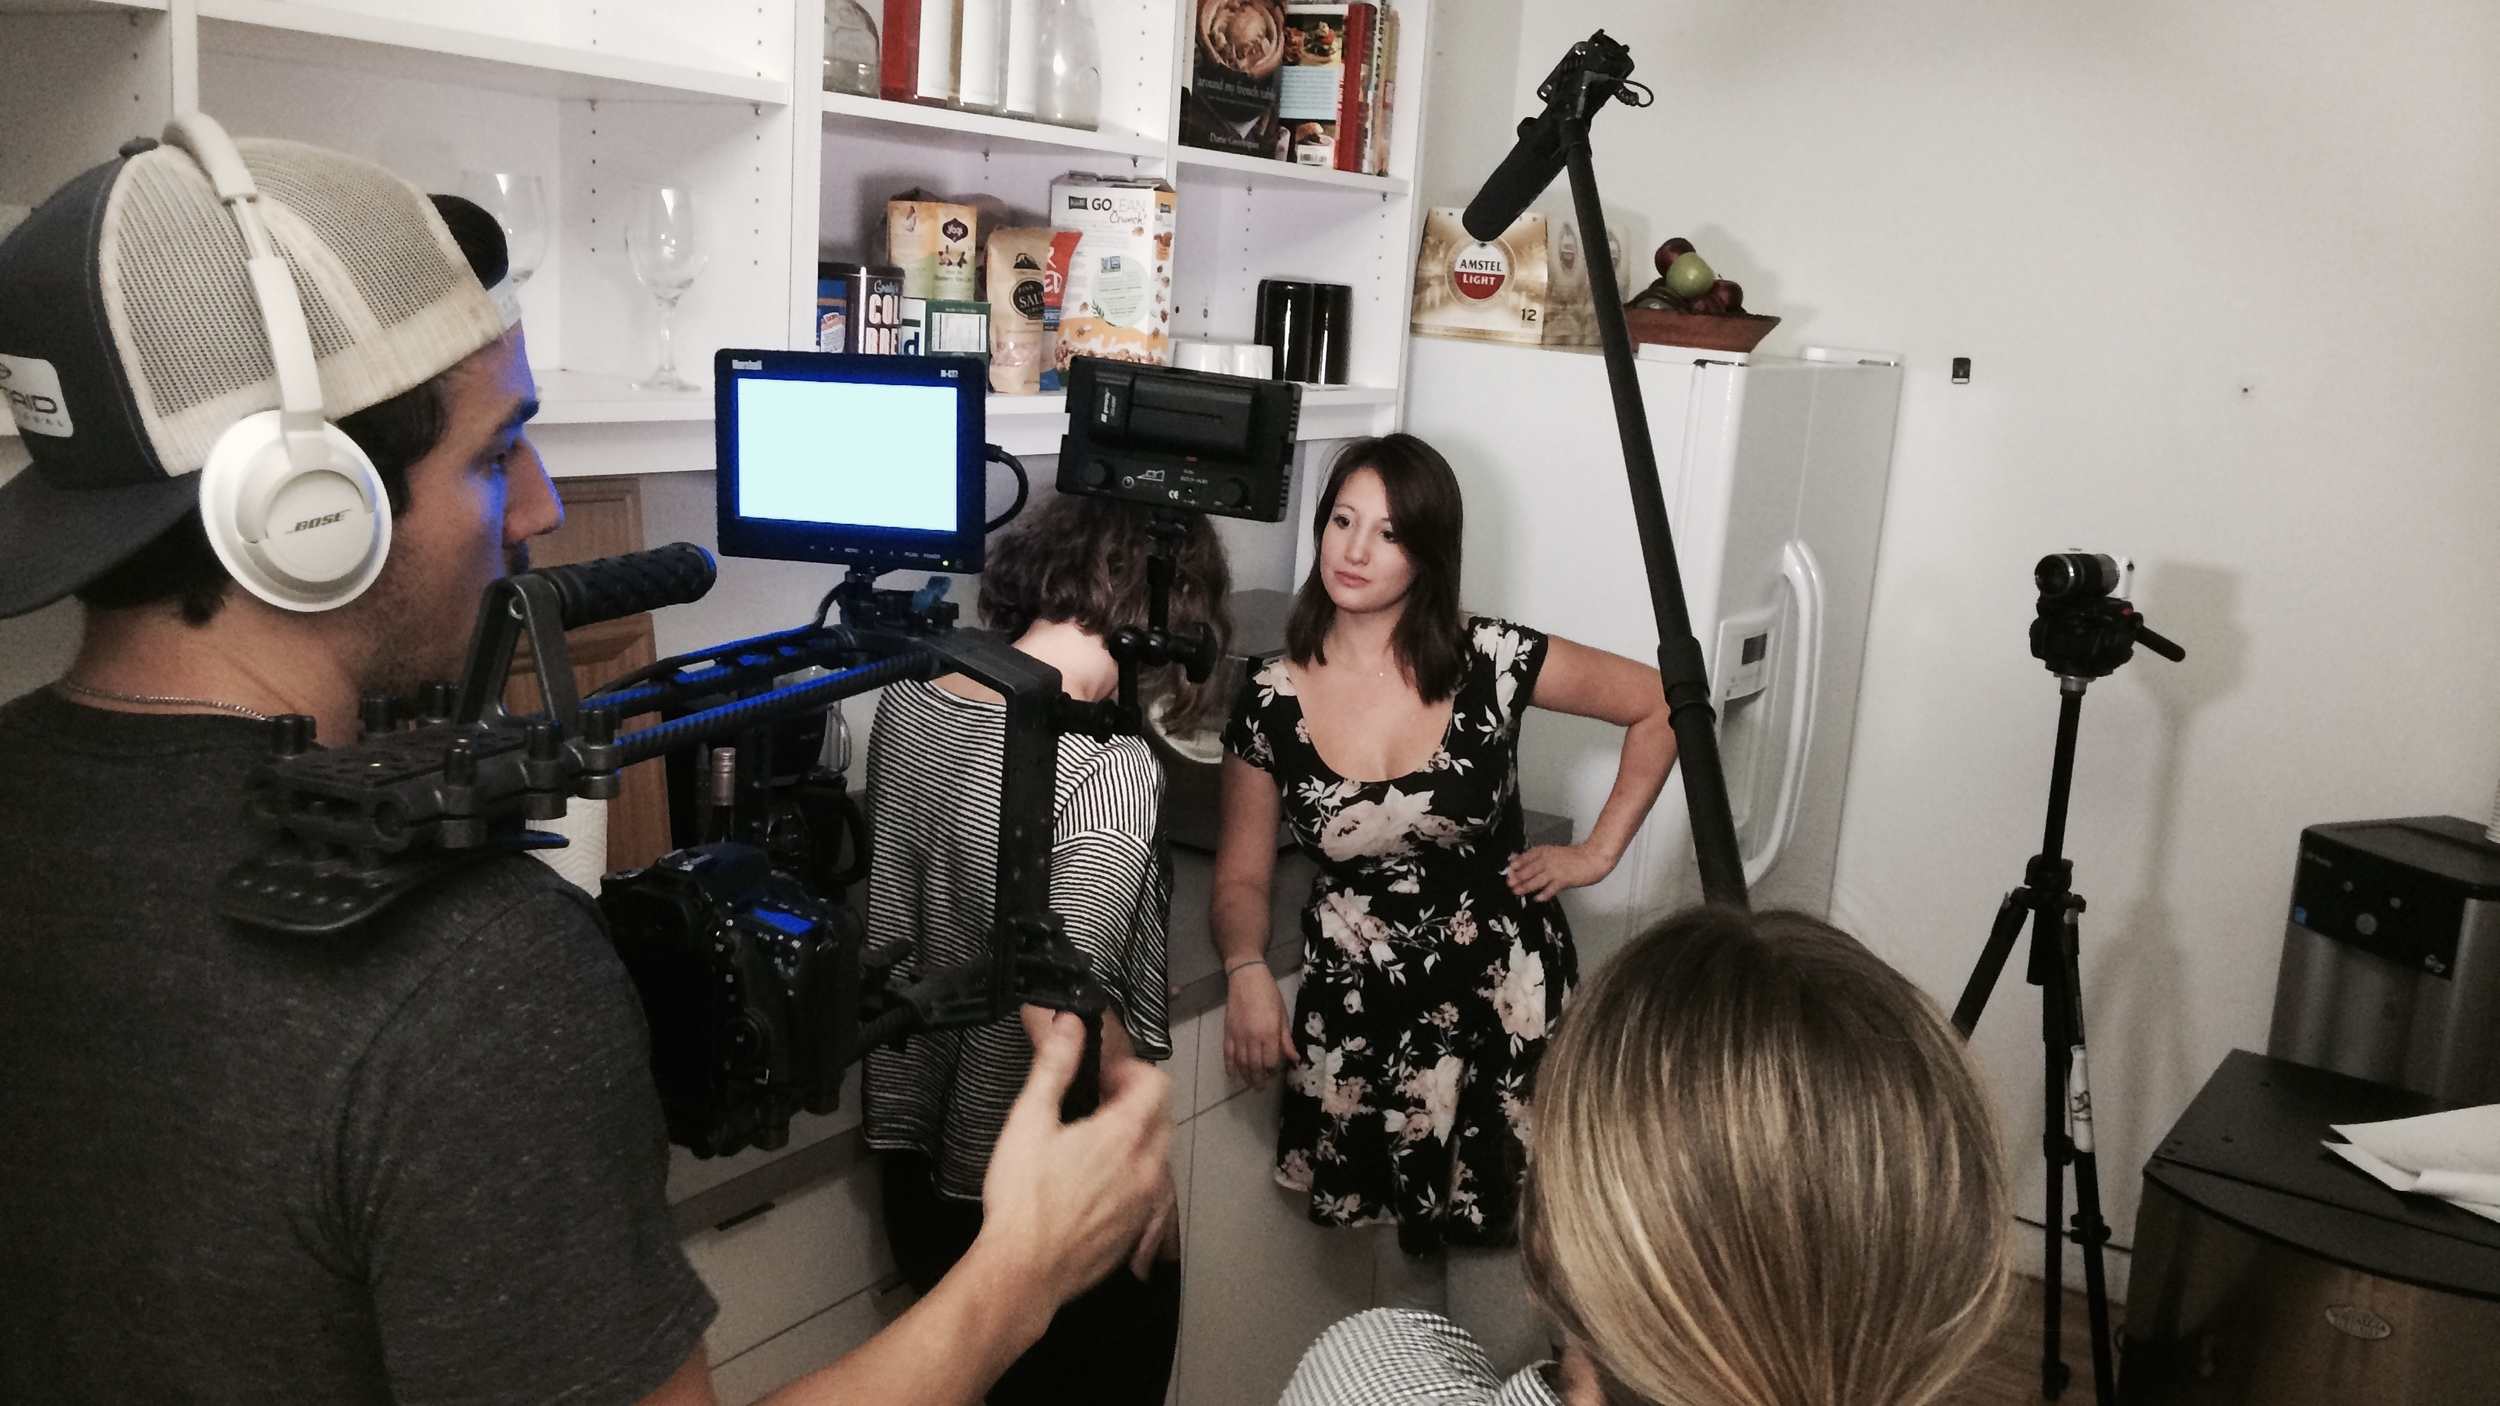 Dan Zelikman sets up the shot for the scene between Elodie and Hannah in the kitchen. (Photo: David Baumwoll)